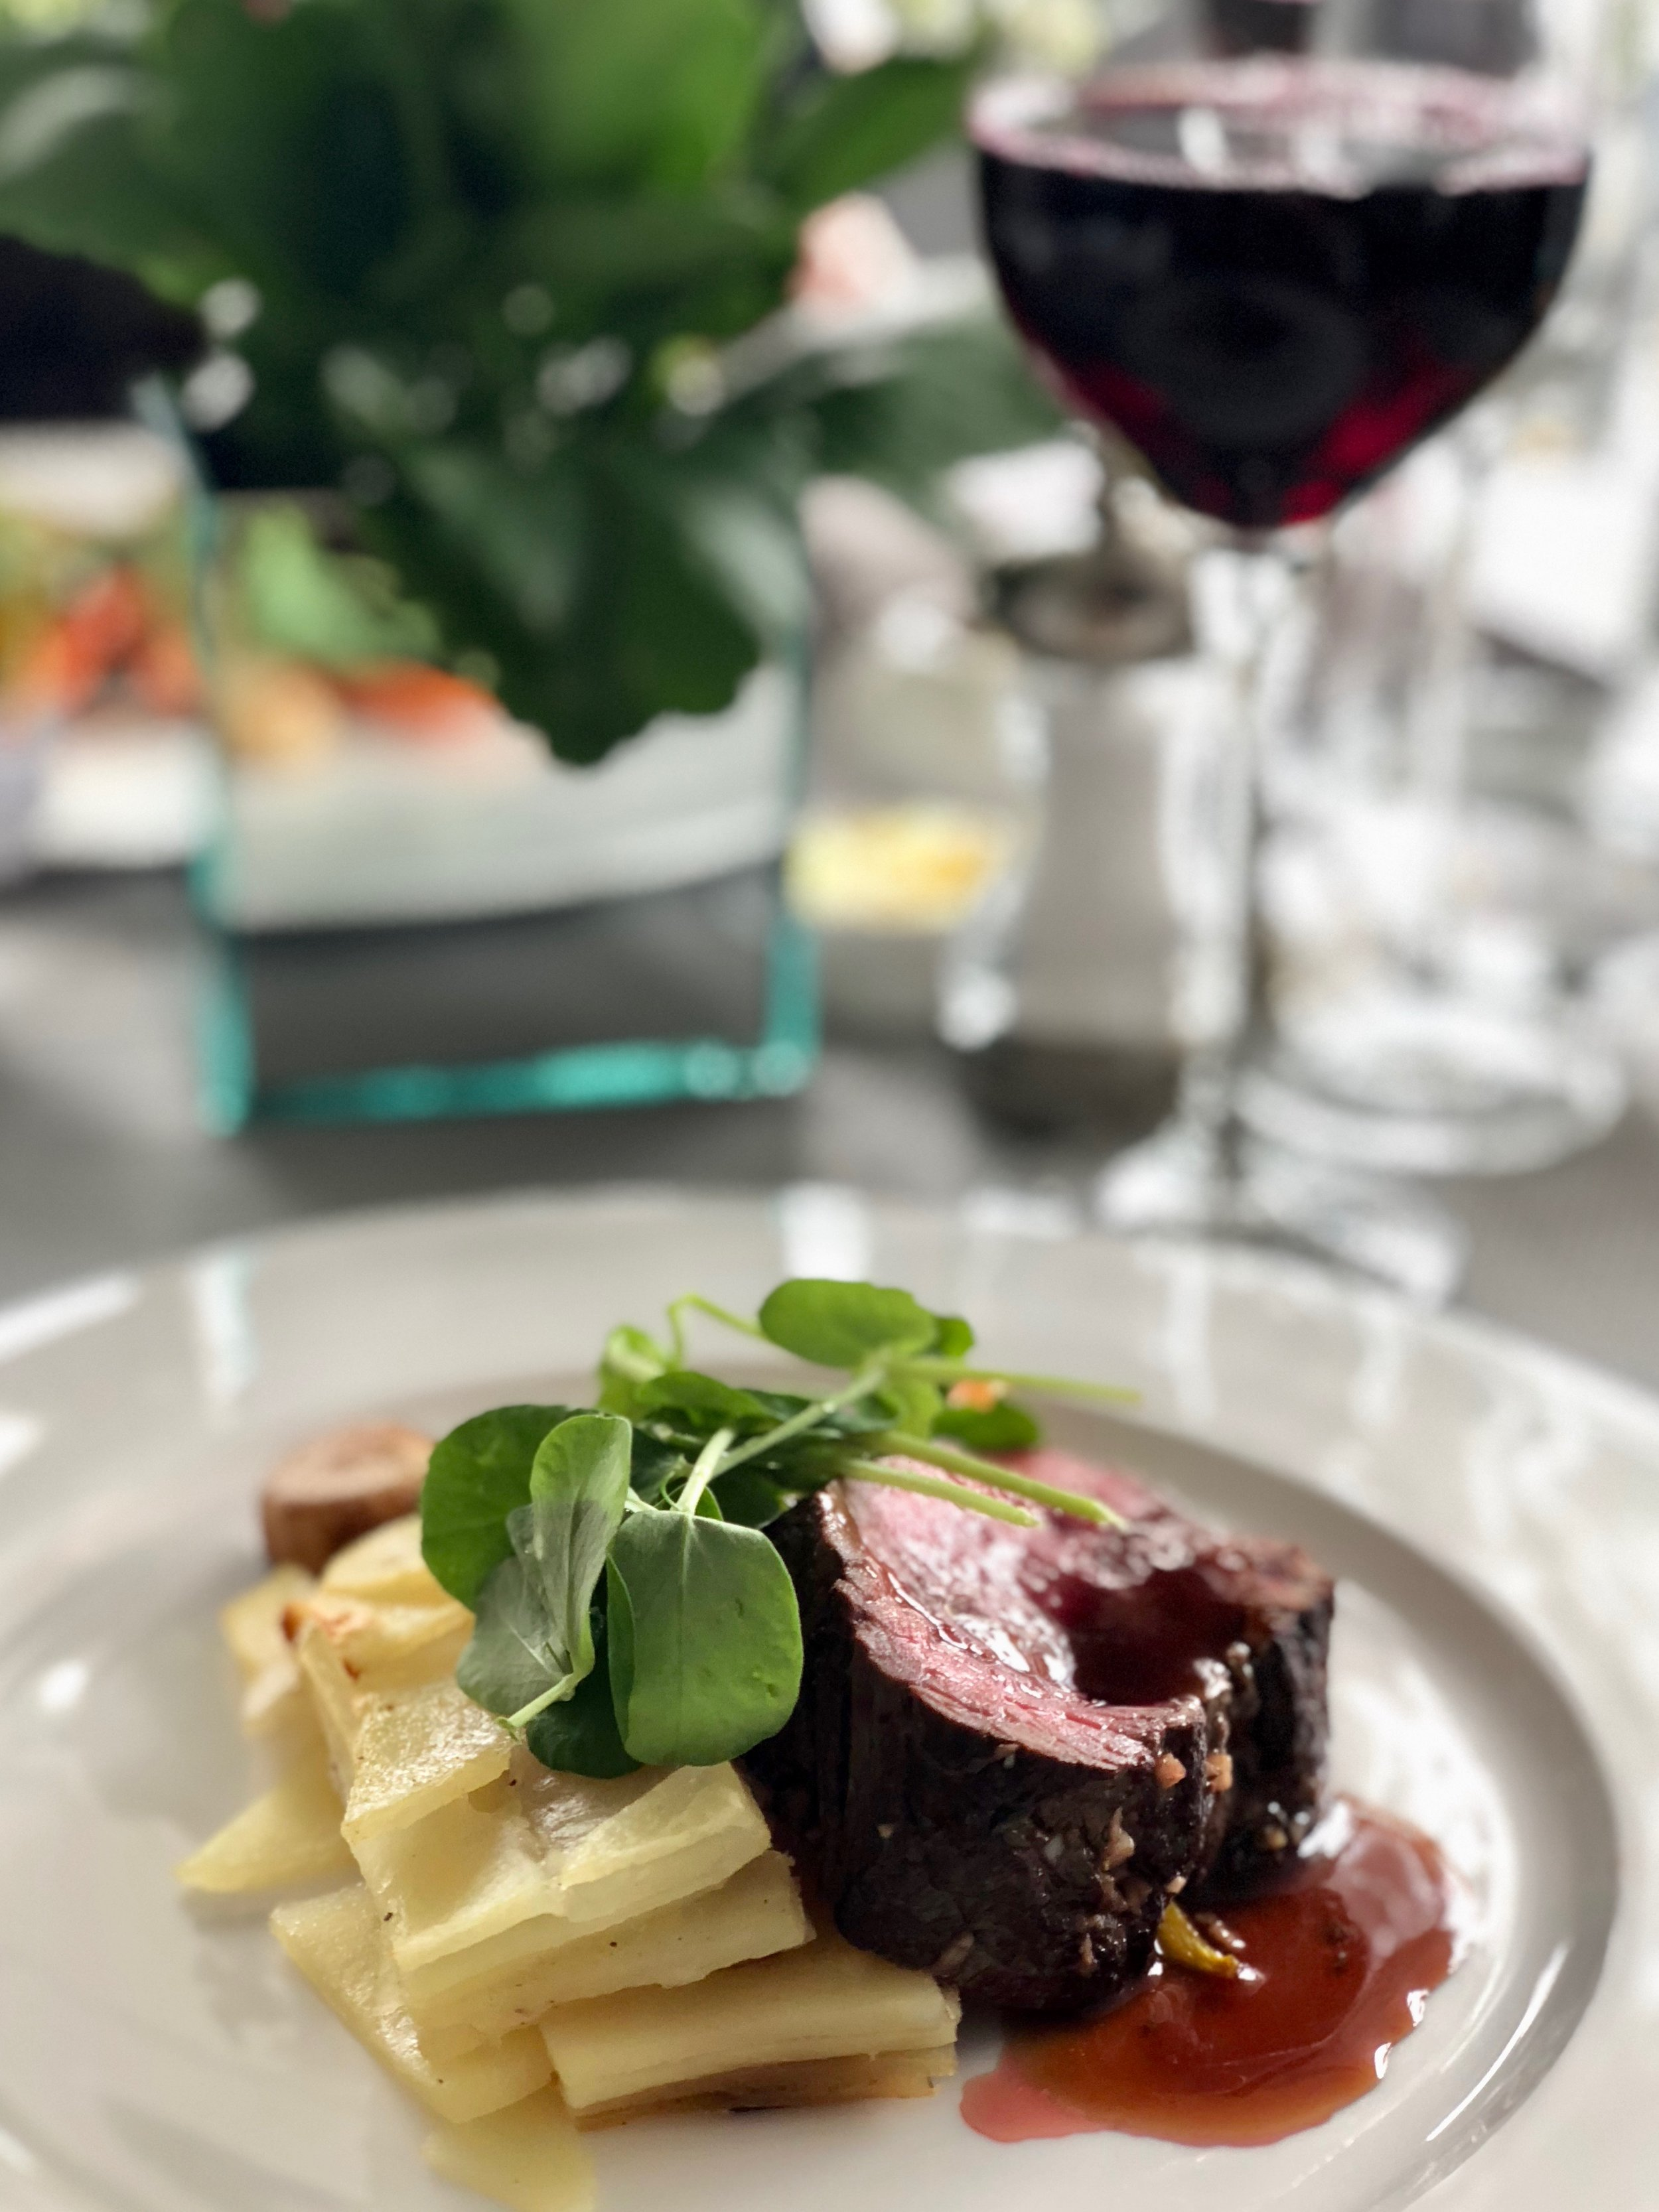 Beef and a glass of red wine